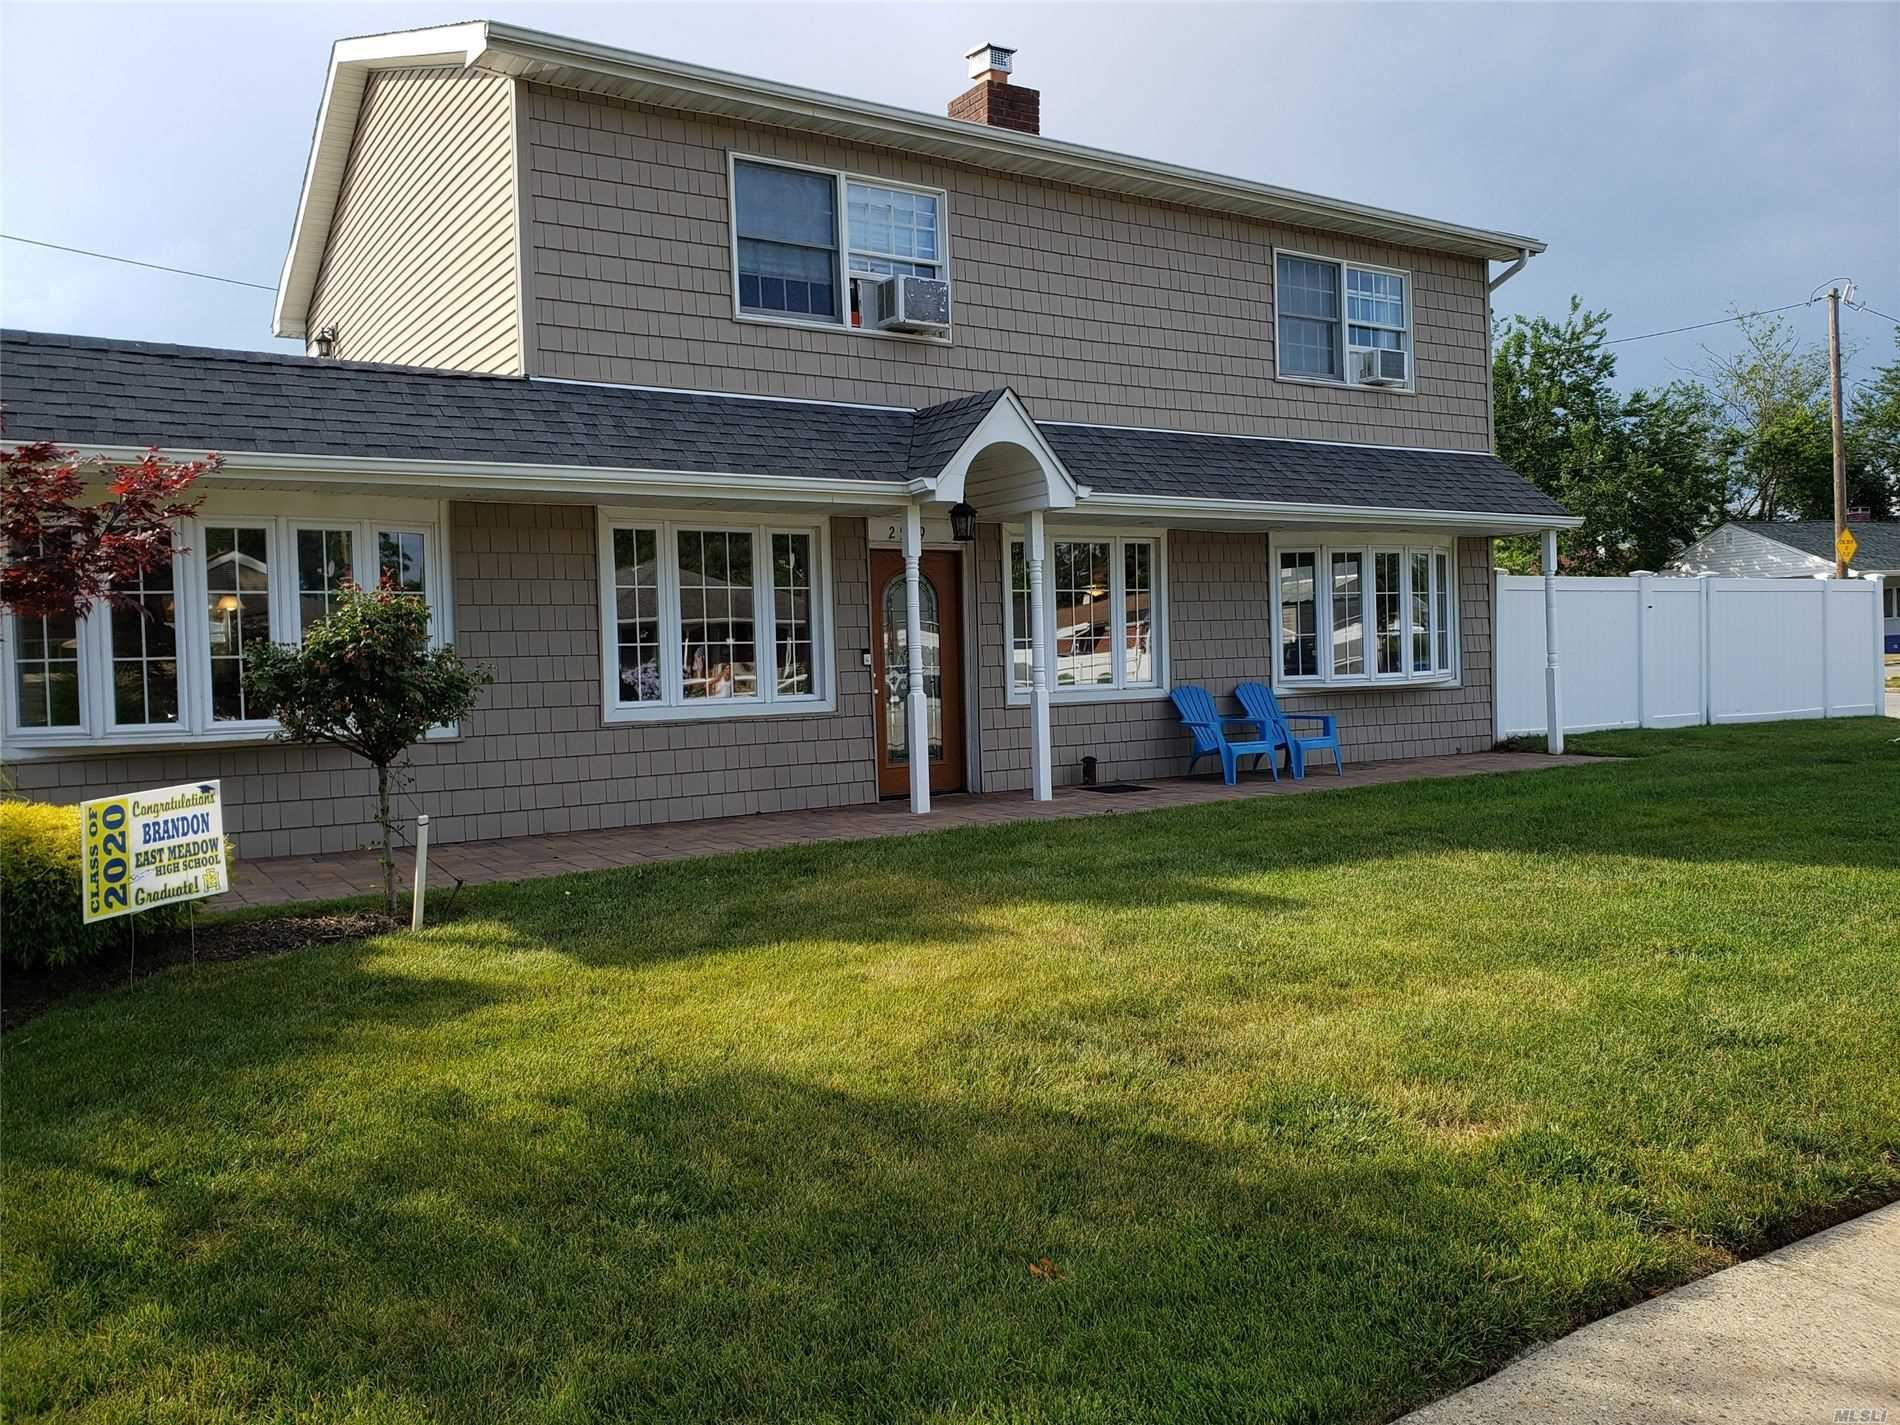 2559 Cypress Ave, East Meadow, NY 11554 - MLS#: 3227670